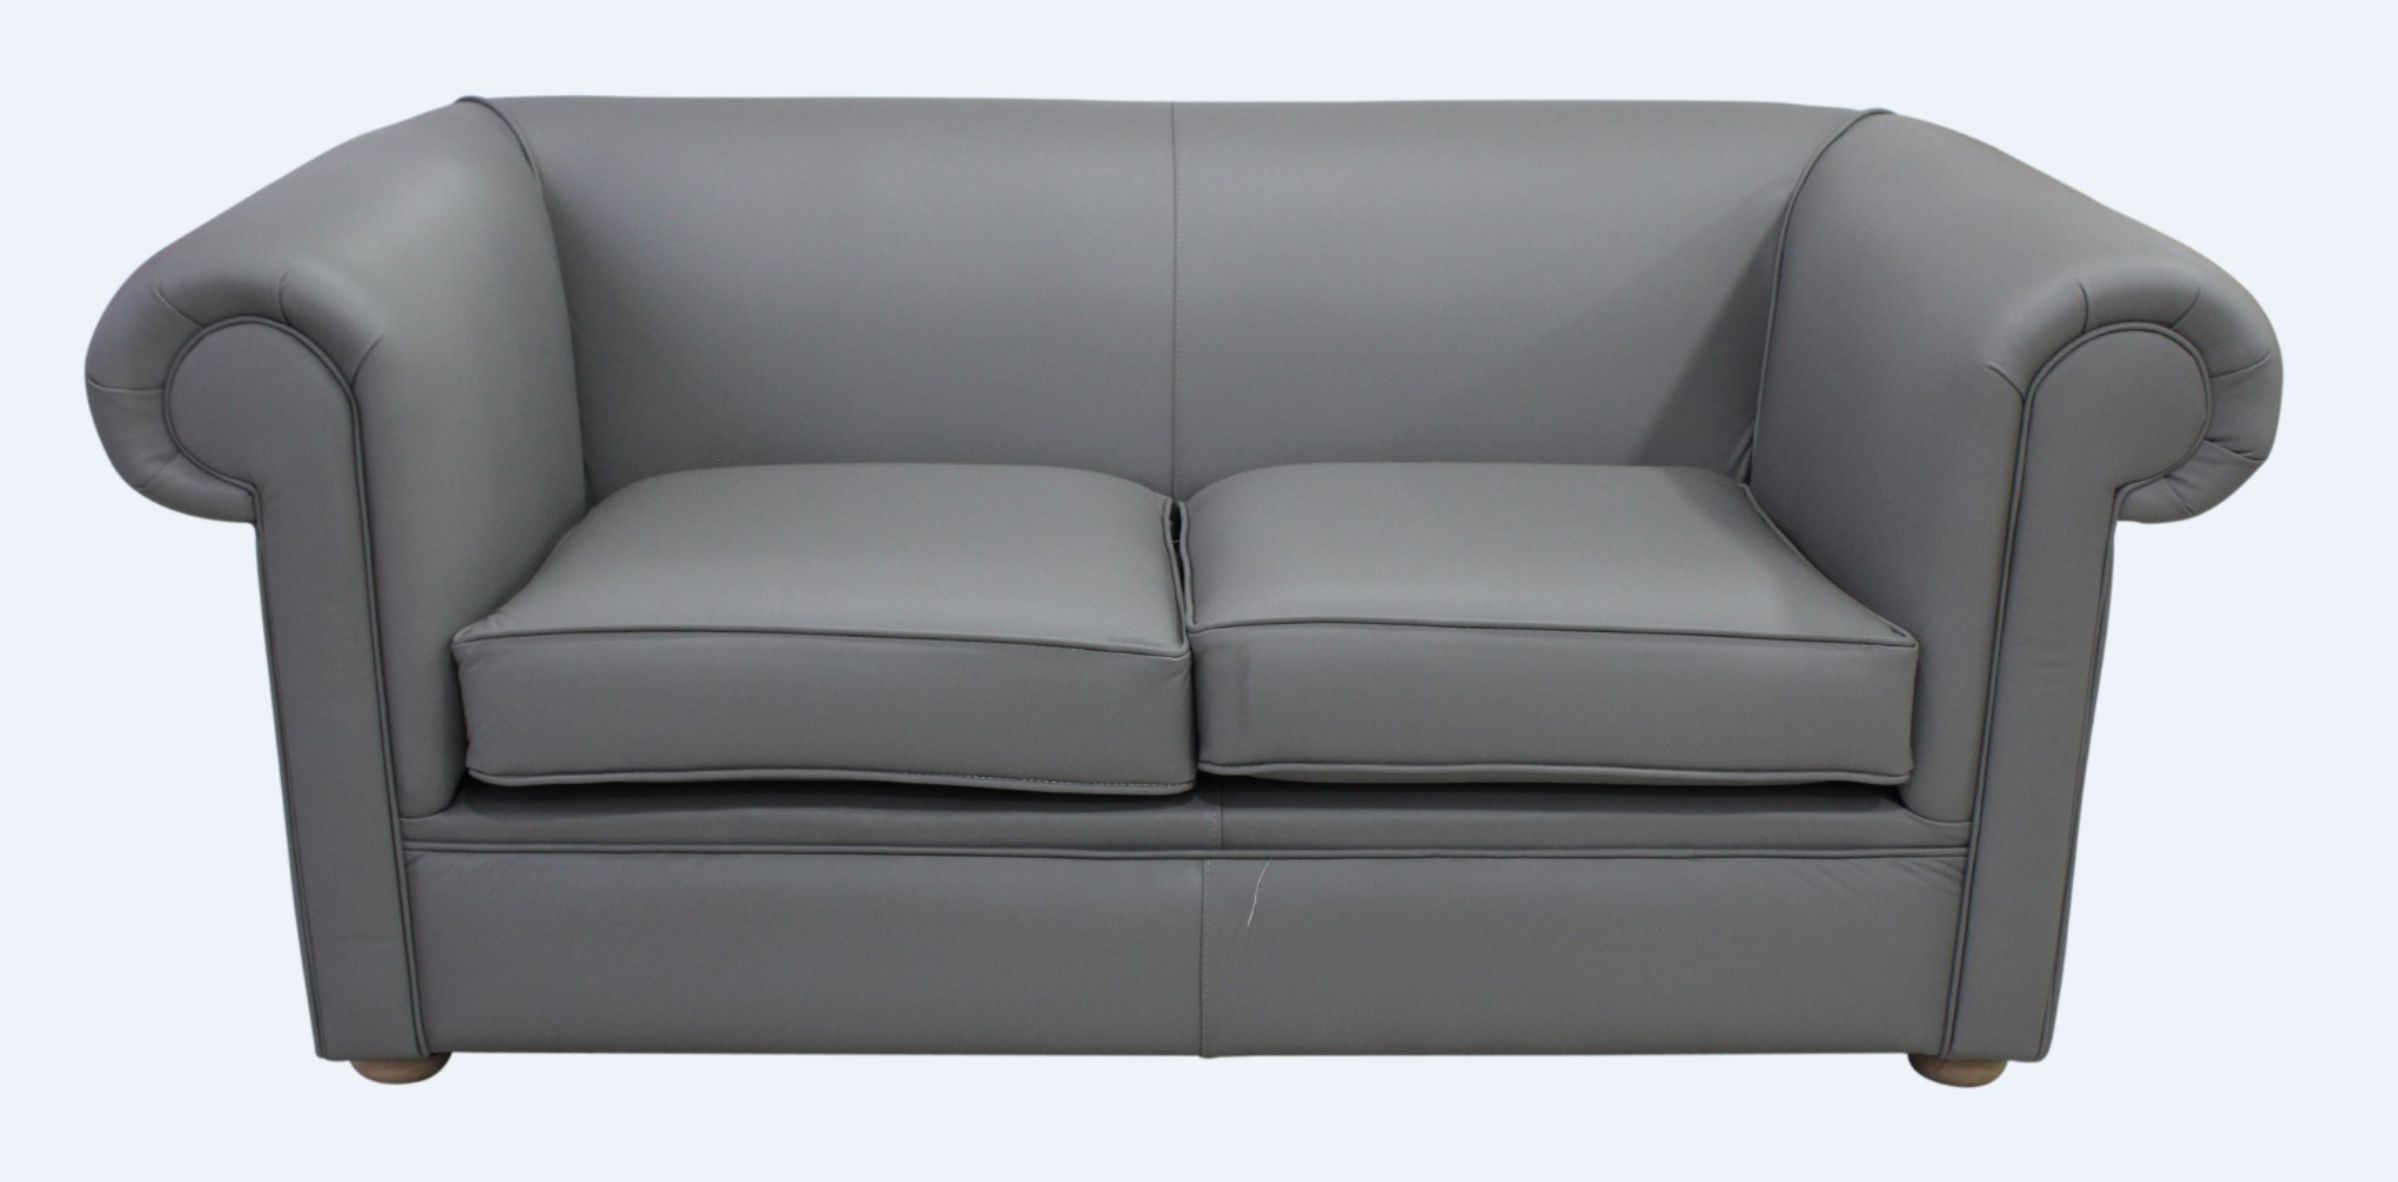 Chesterfield 1930 S 2 Seater Settee Moonmist Grey Leather Sofa